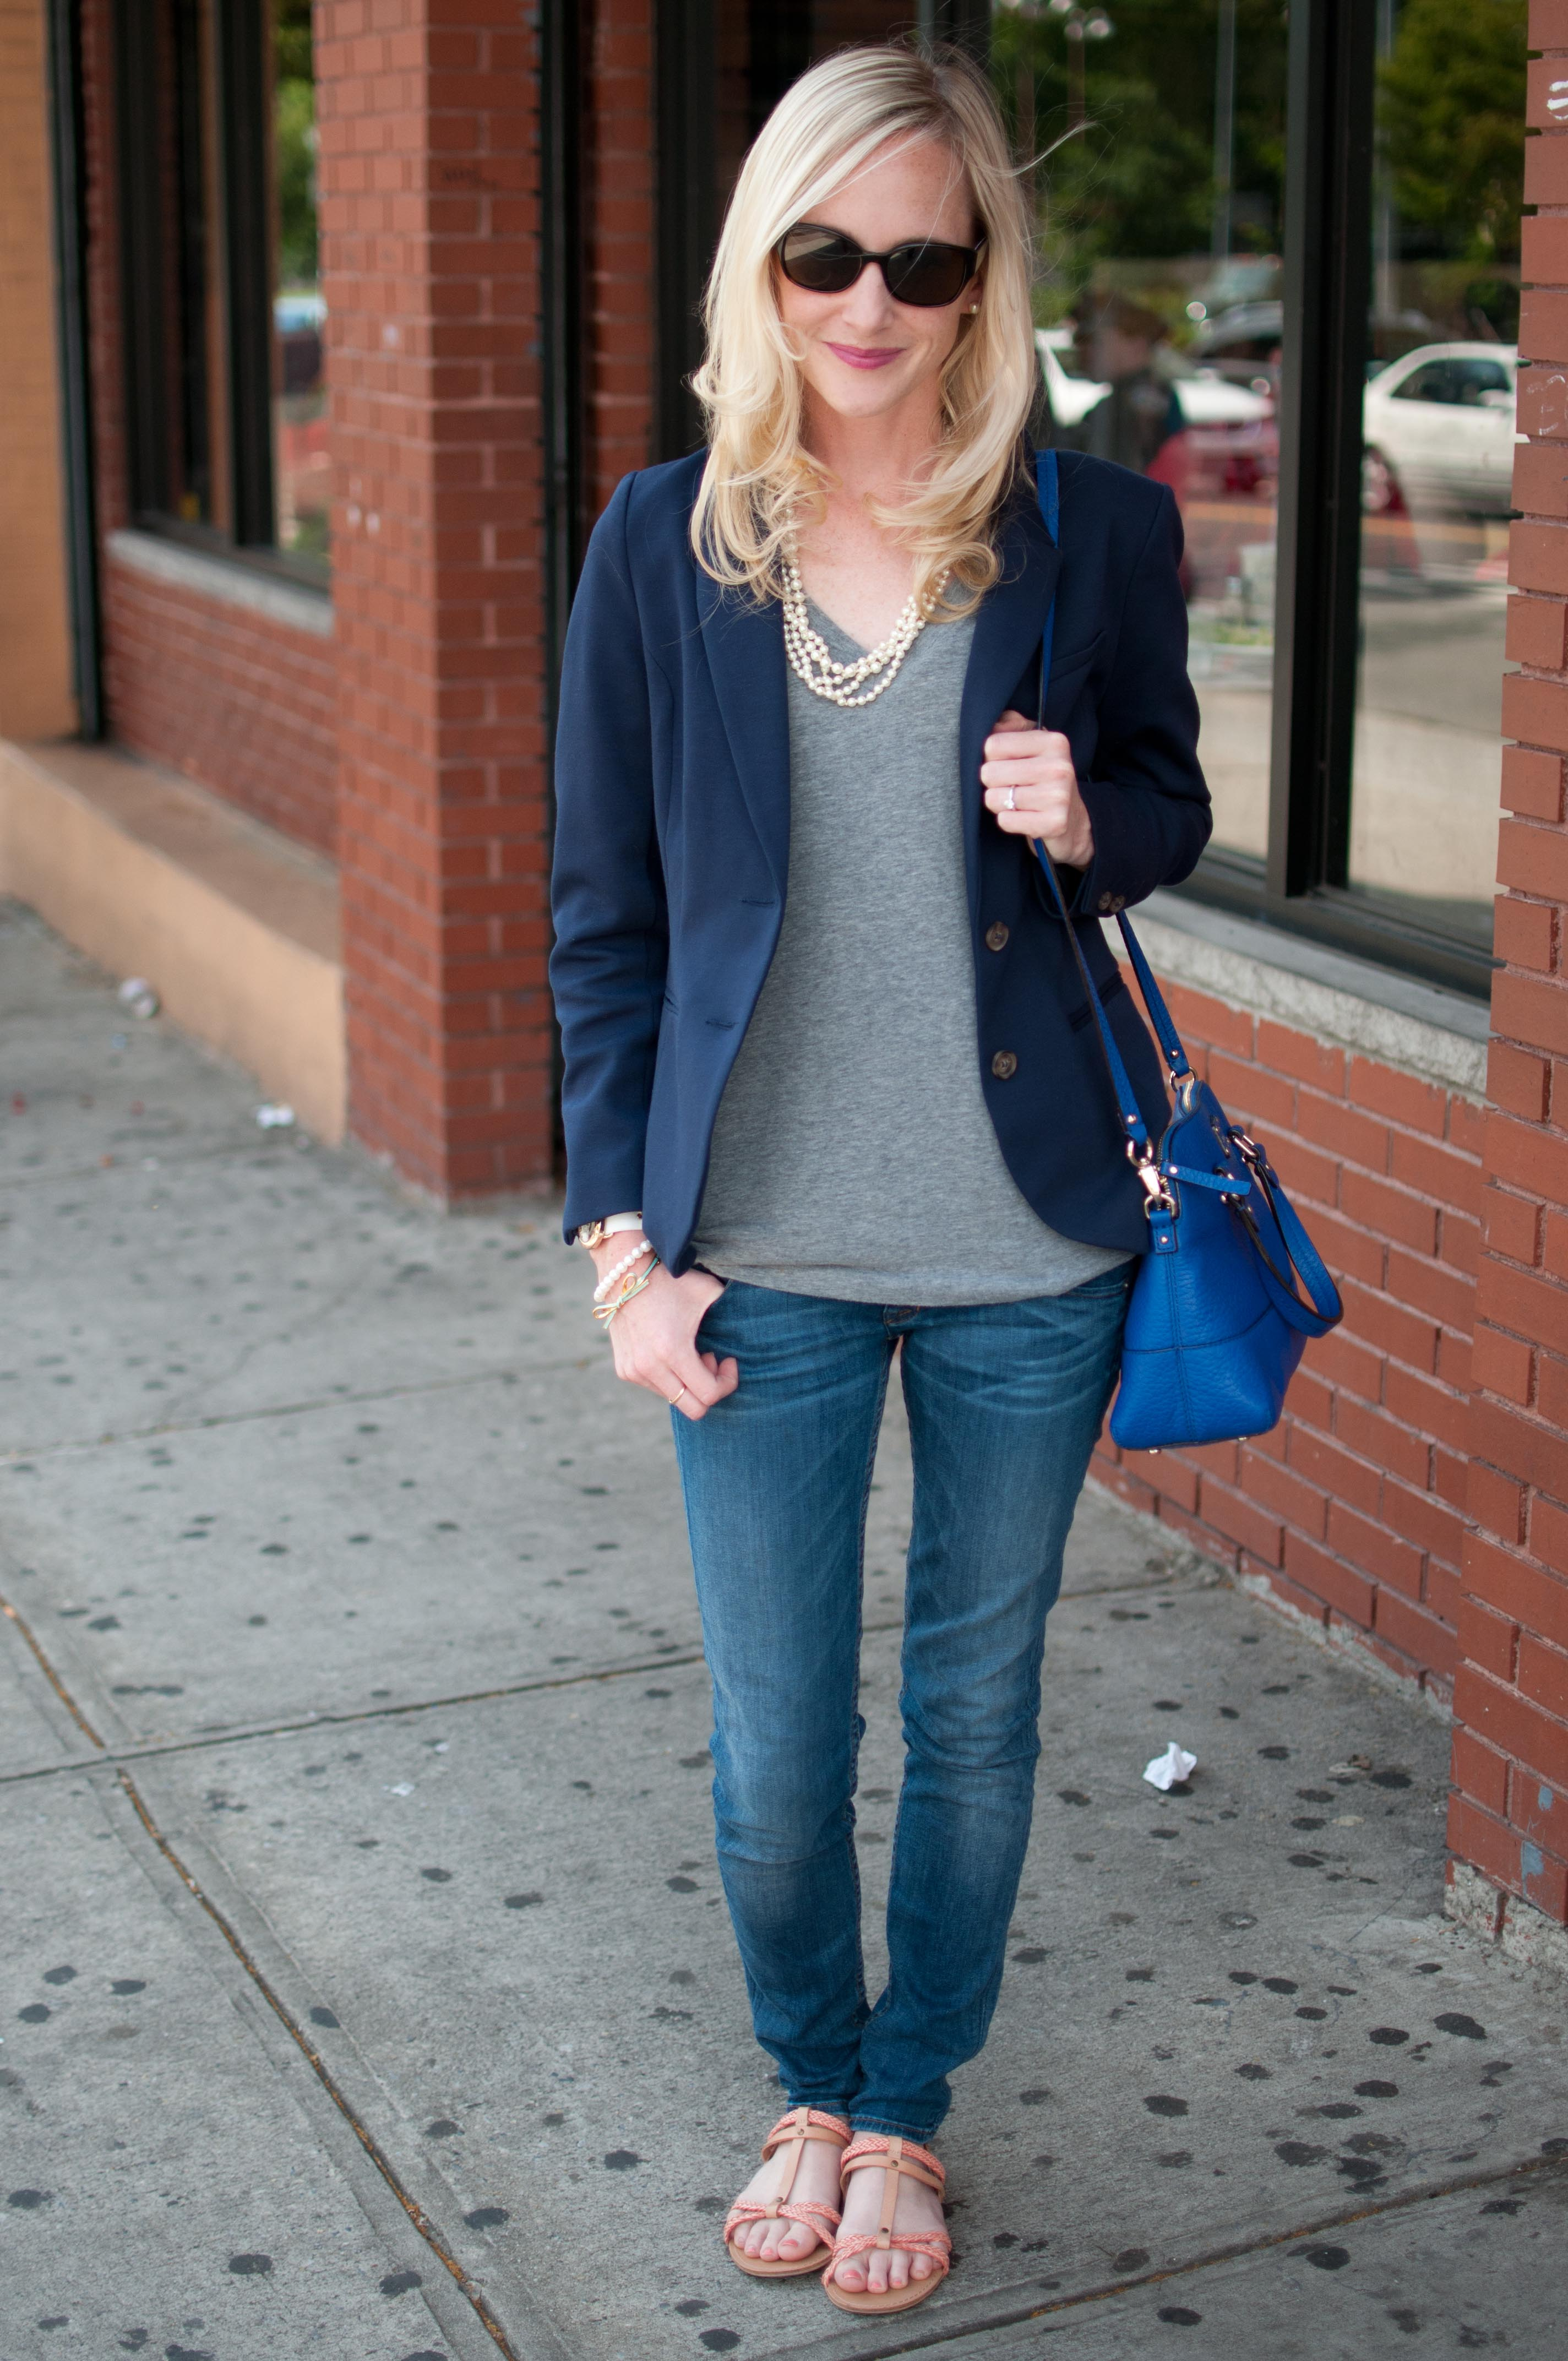 Casual Friday Jeans T Shirts And Bright Blue Bags